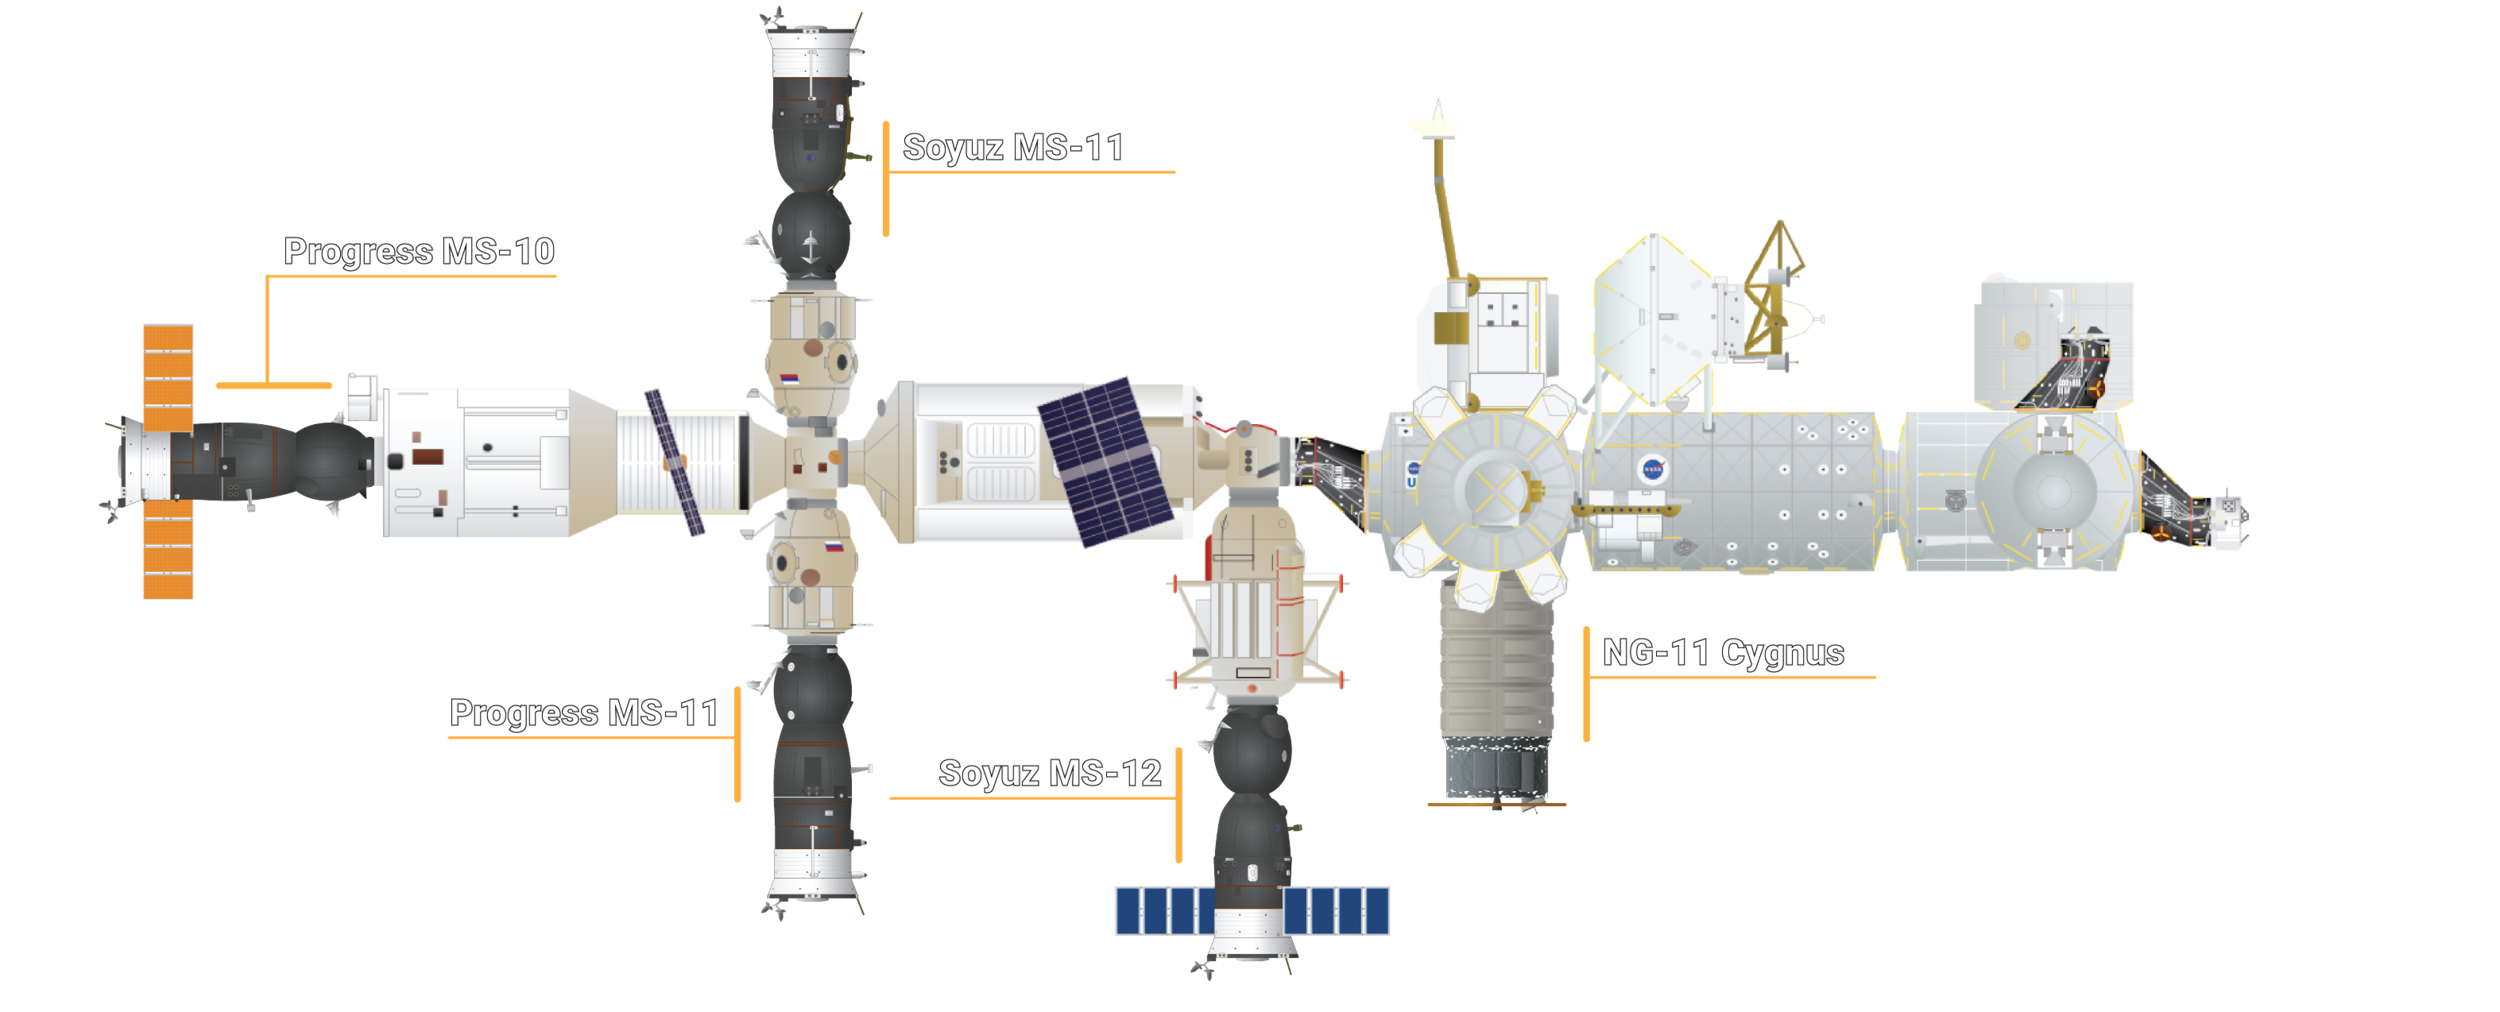 The ISS configuration following the arrival of the NG-11 Cygnus cargo spacecraft. Credit: Orbital Velocity